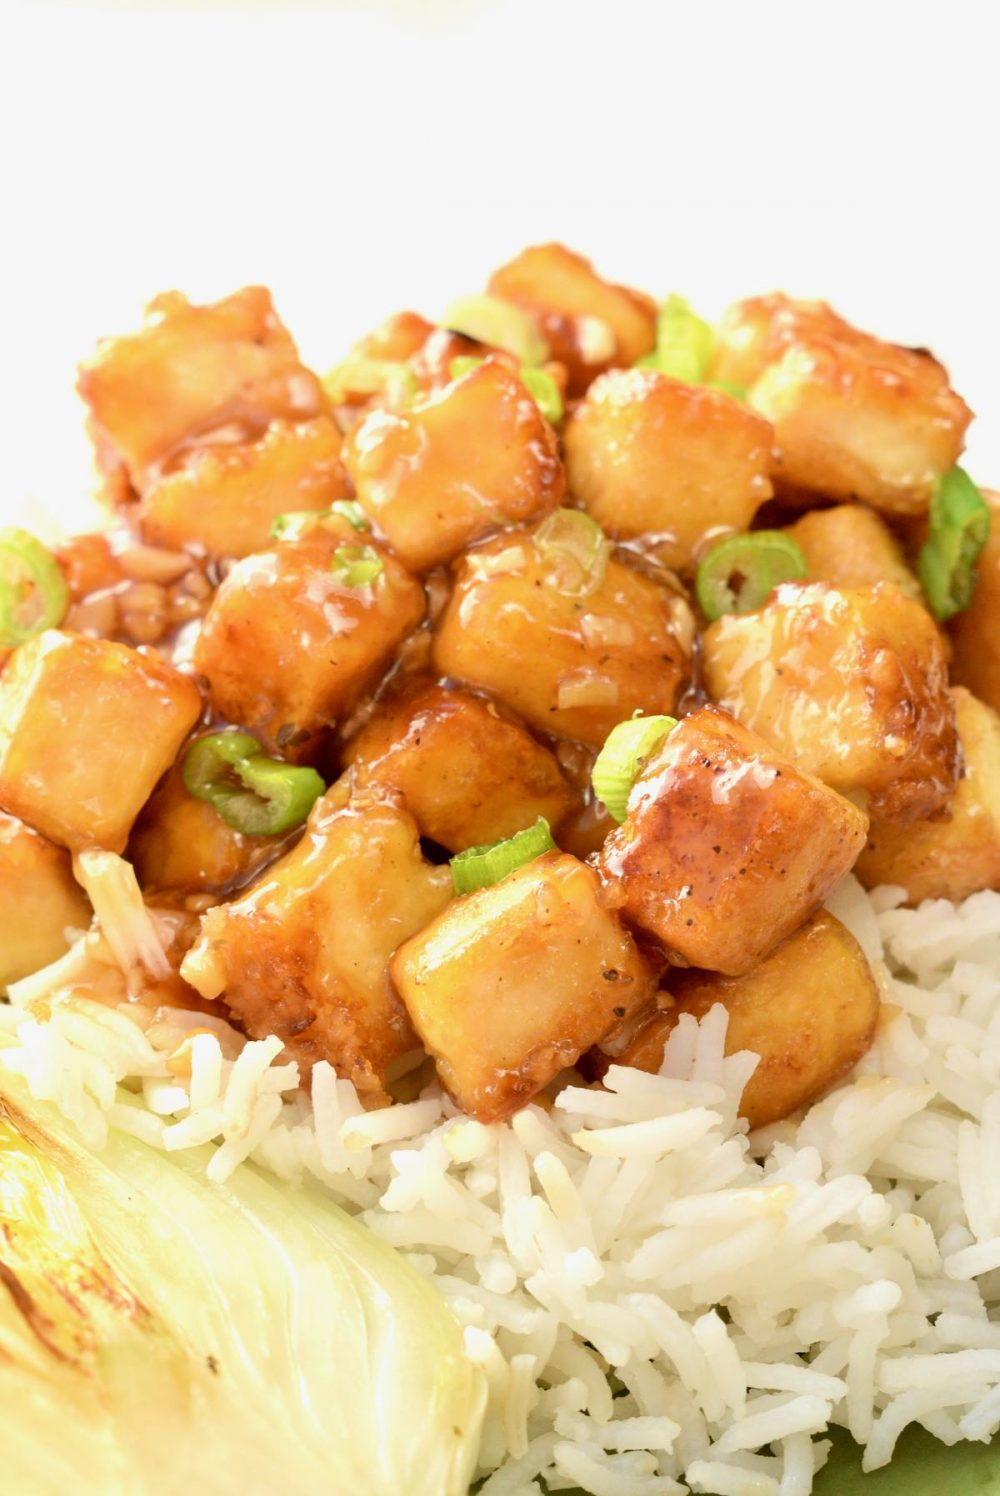 A sticky, shiny lemony sauce covering cubes of tofu on top of white rice